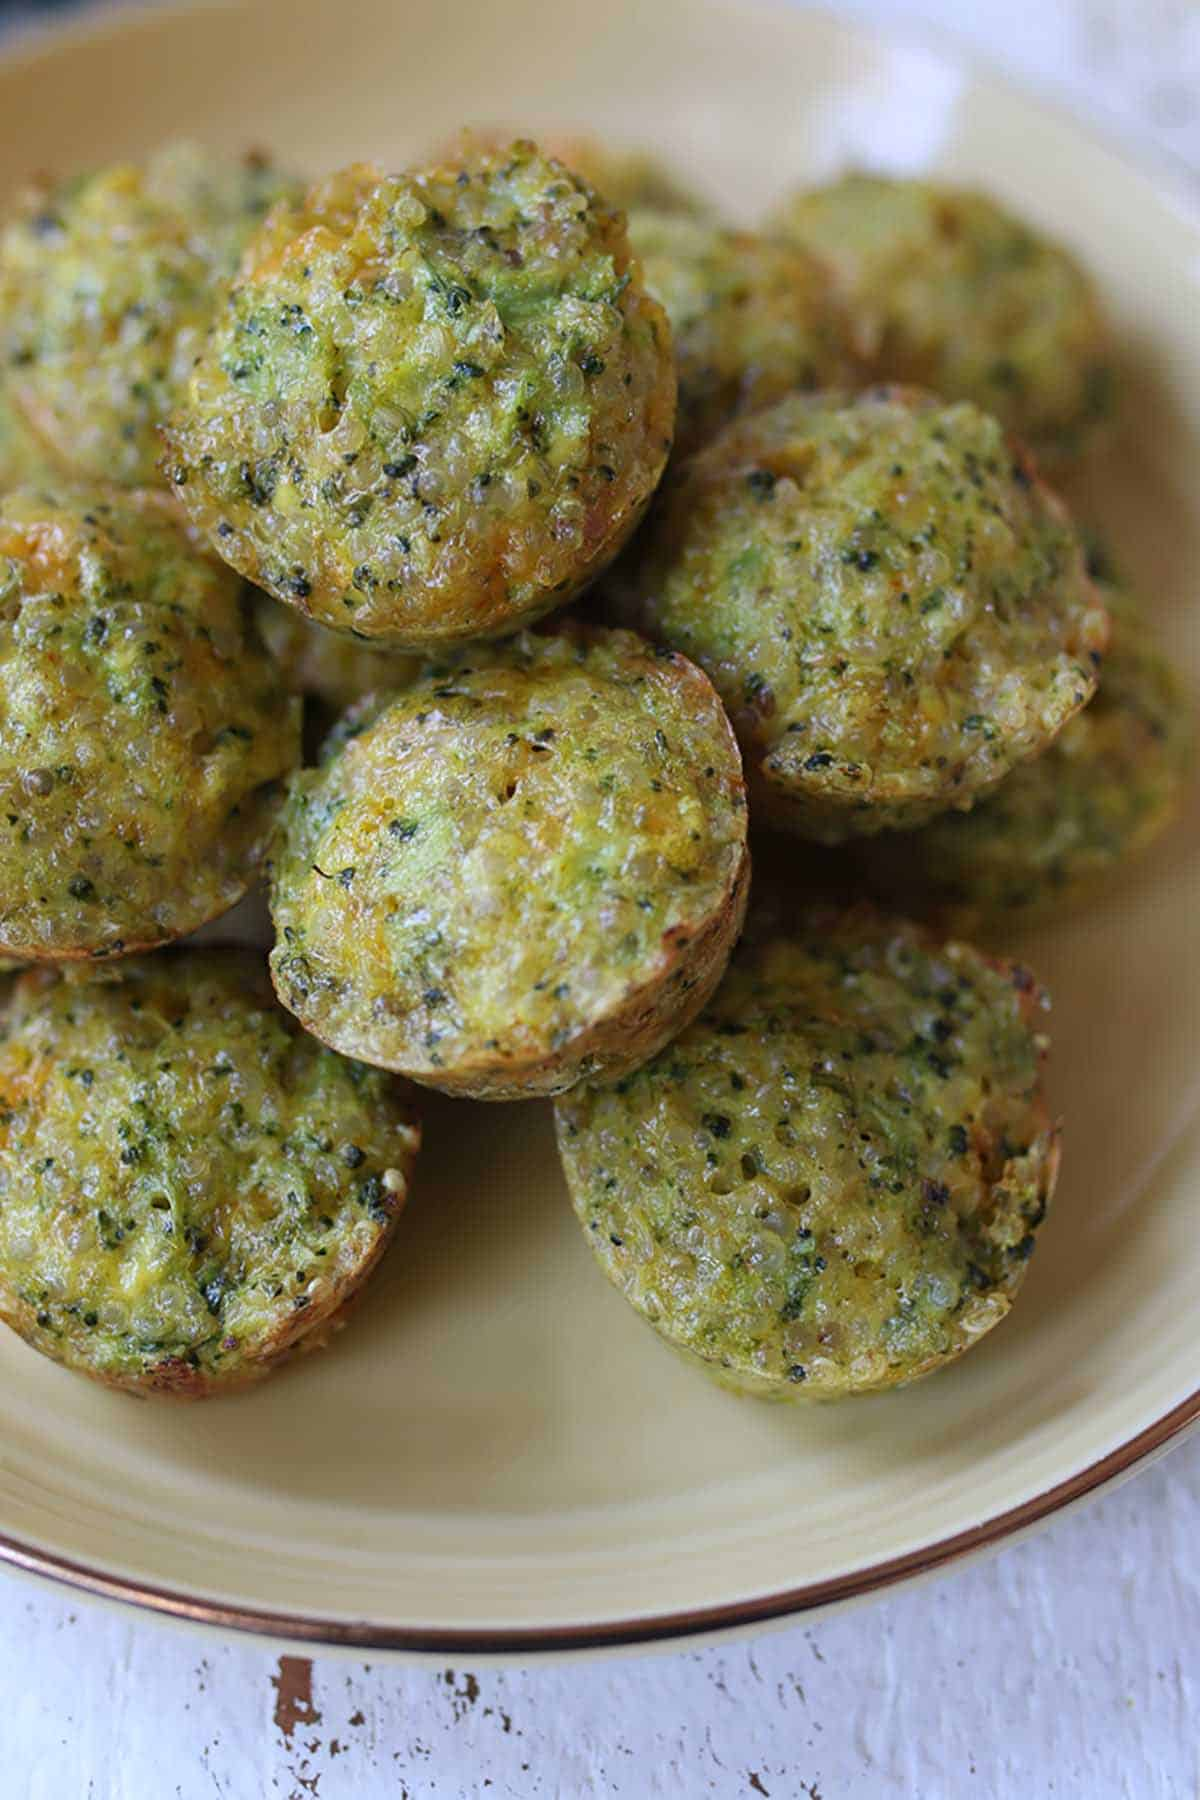 Several mini broccoli and cheese egg muffins on a yellow plate.